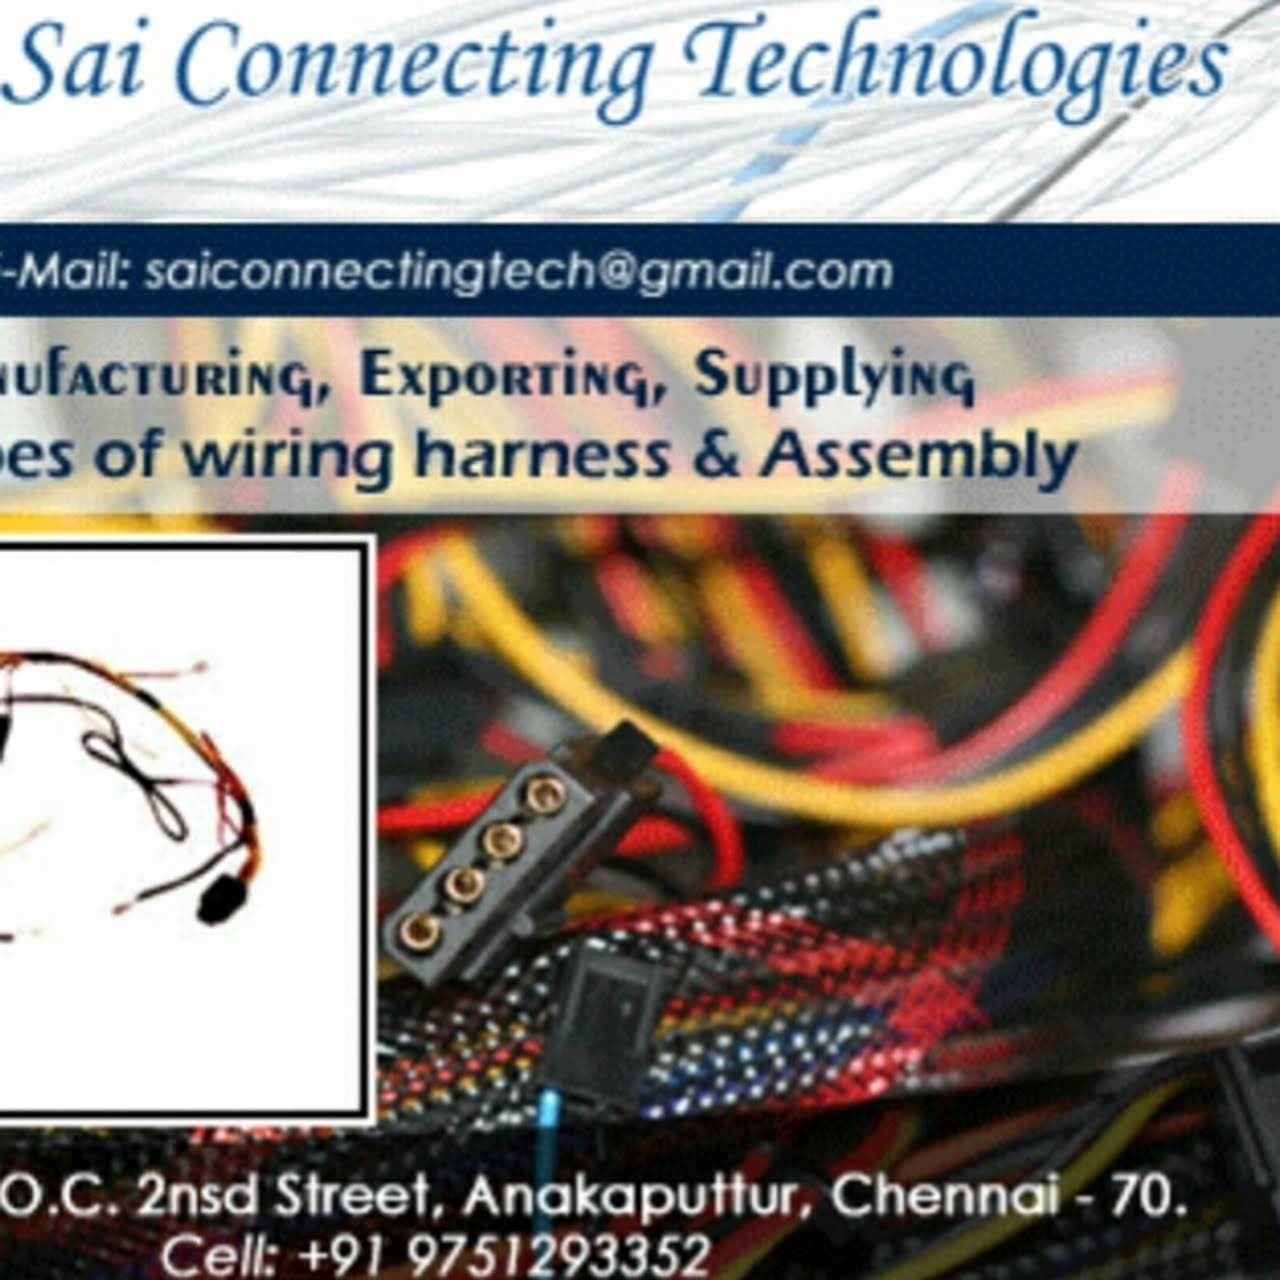 Sai Connecting Technologies Cable Harness Manufacturer In Chennai Wiring Manufacturers India Posted On Dec 9 2017